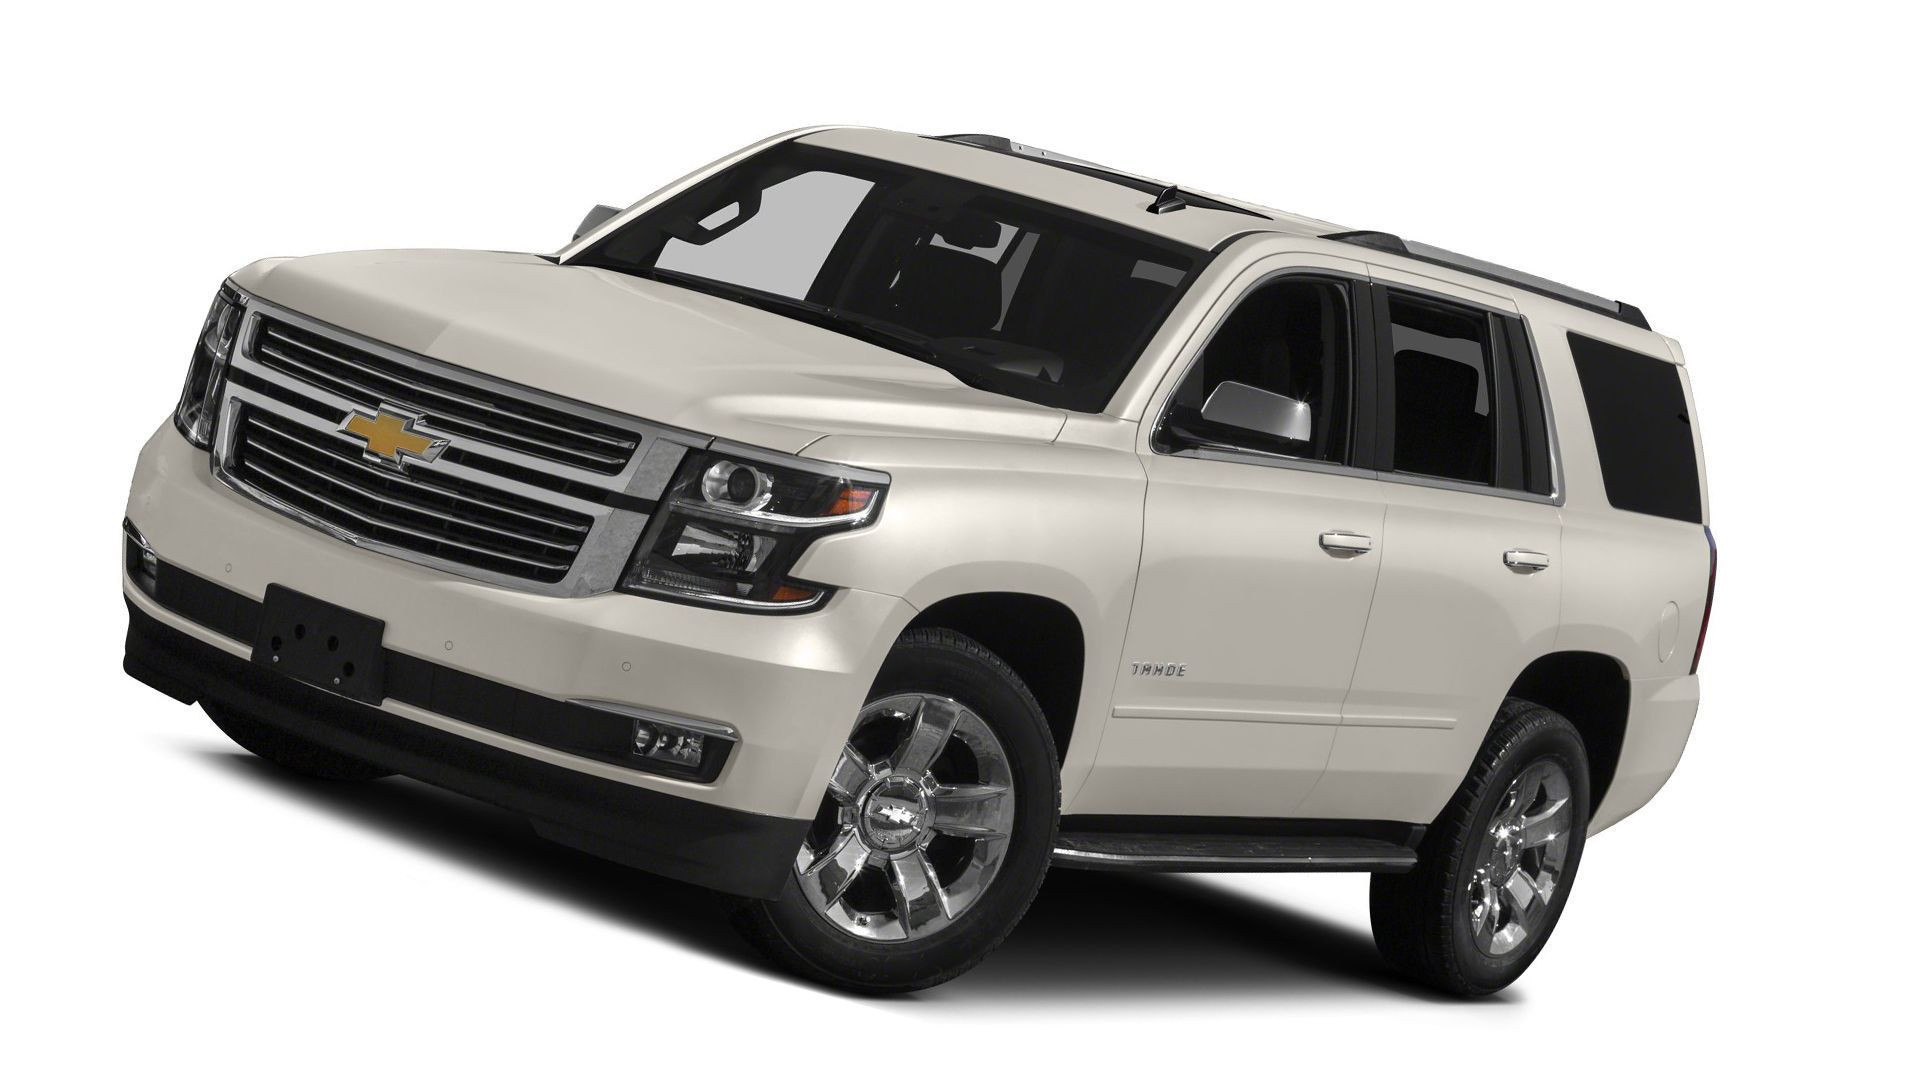 87 The Best 2020 Chevy Tahoe Z71 Ss Price and Release date